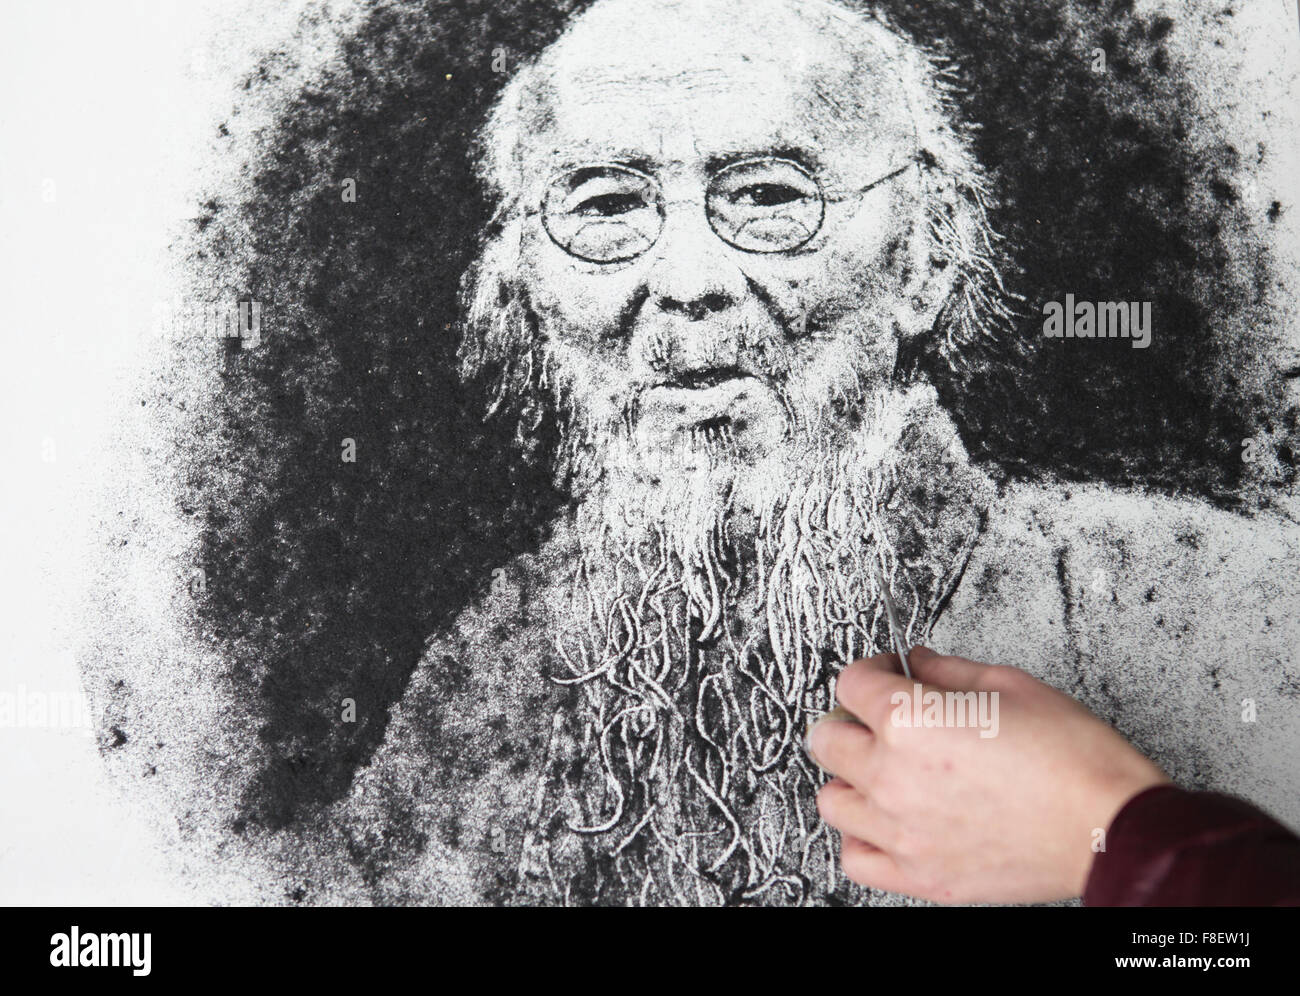 Sanmenxia. 9th Dec, 2015. Photo taken on Dec. 9, 2015 shows a Qi Baishi's portait drawed with hair pieces by - Stock Image